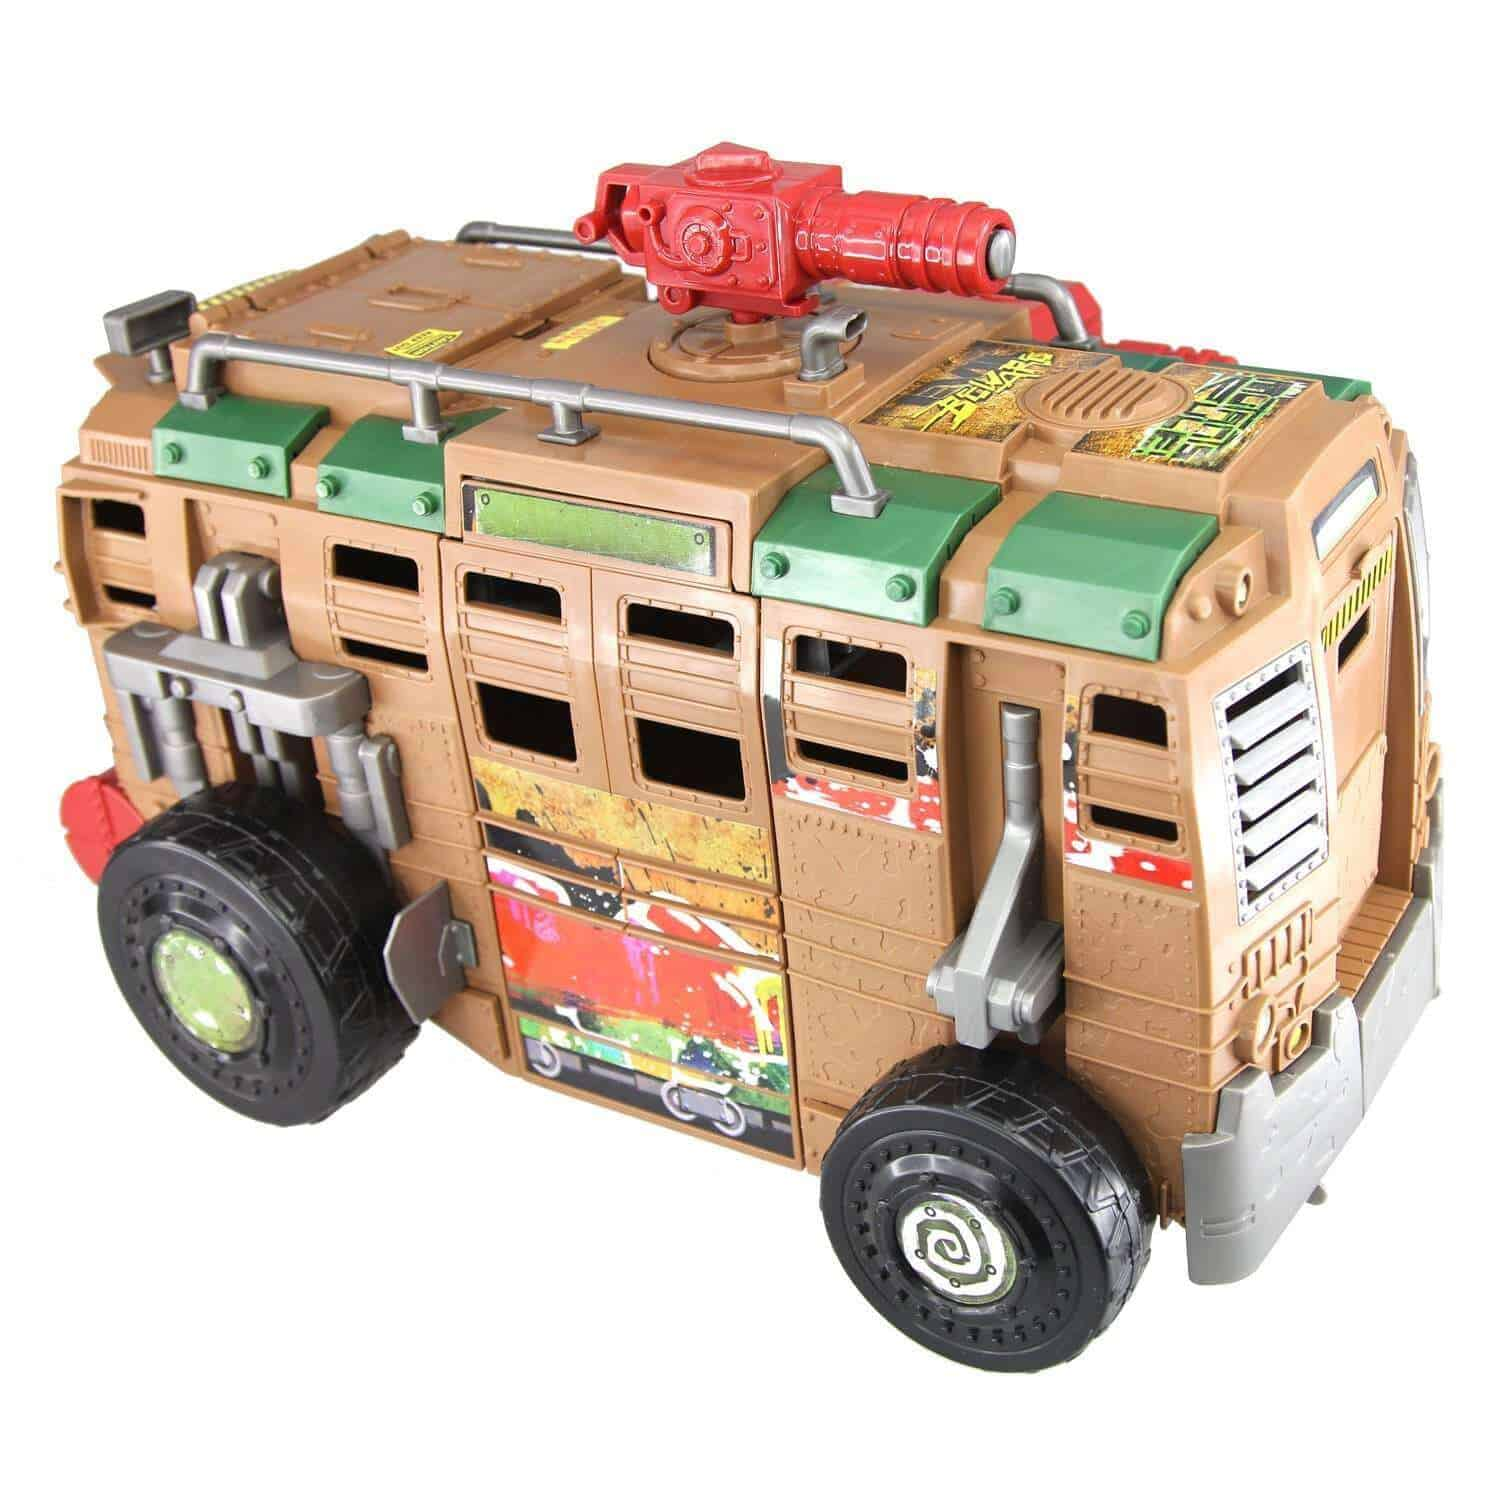 Turtle Toys For Boys : Best toys for boys madame deals